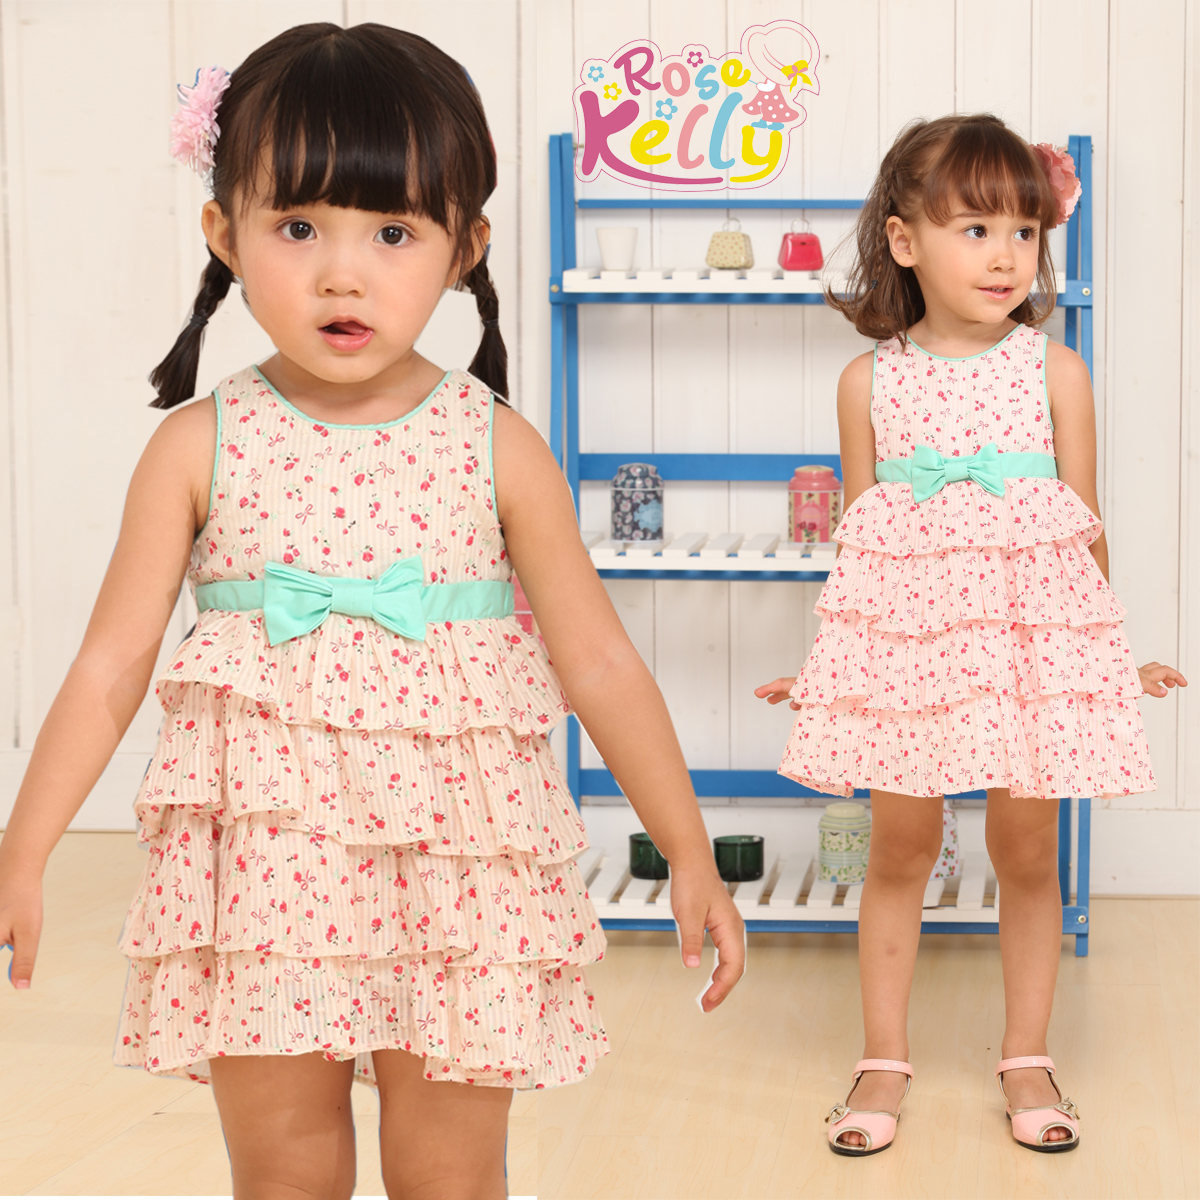 Online find quality Wholesale Baby Wears from our reliable Wholesale Baby Clothing Manufacturers and Baby Clothes Suppliers. Make your free Baby Wears enquiry from our Baby Wears Wholesaler / Manufacturer and get the latest price through our trustable Wholesale Baby Clothing Manufacturers and Baby Clothes Suppliers for the best Baby Wears now!